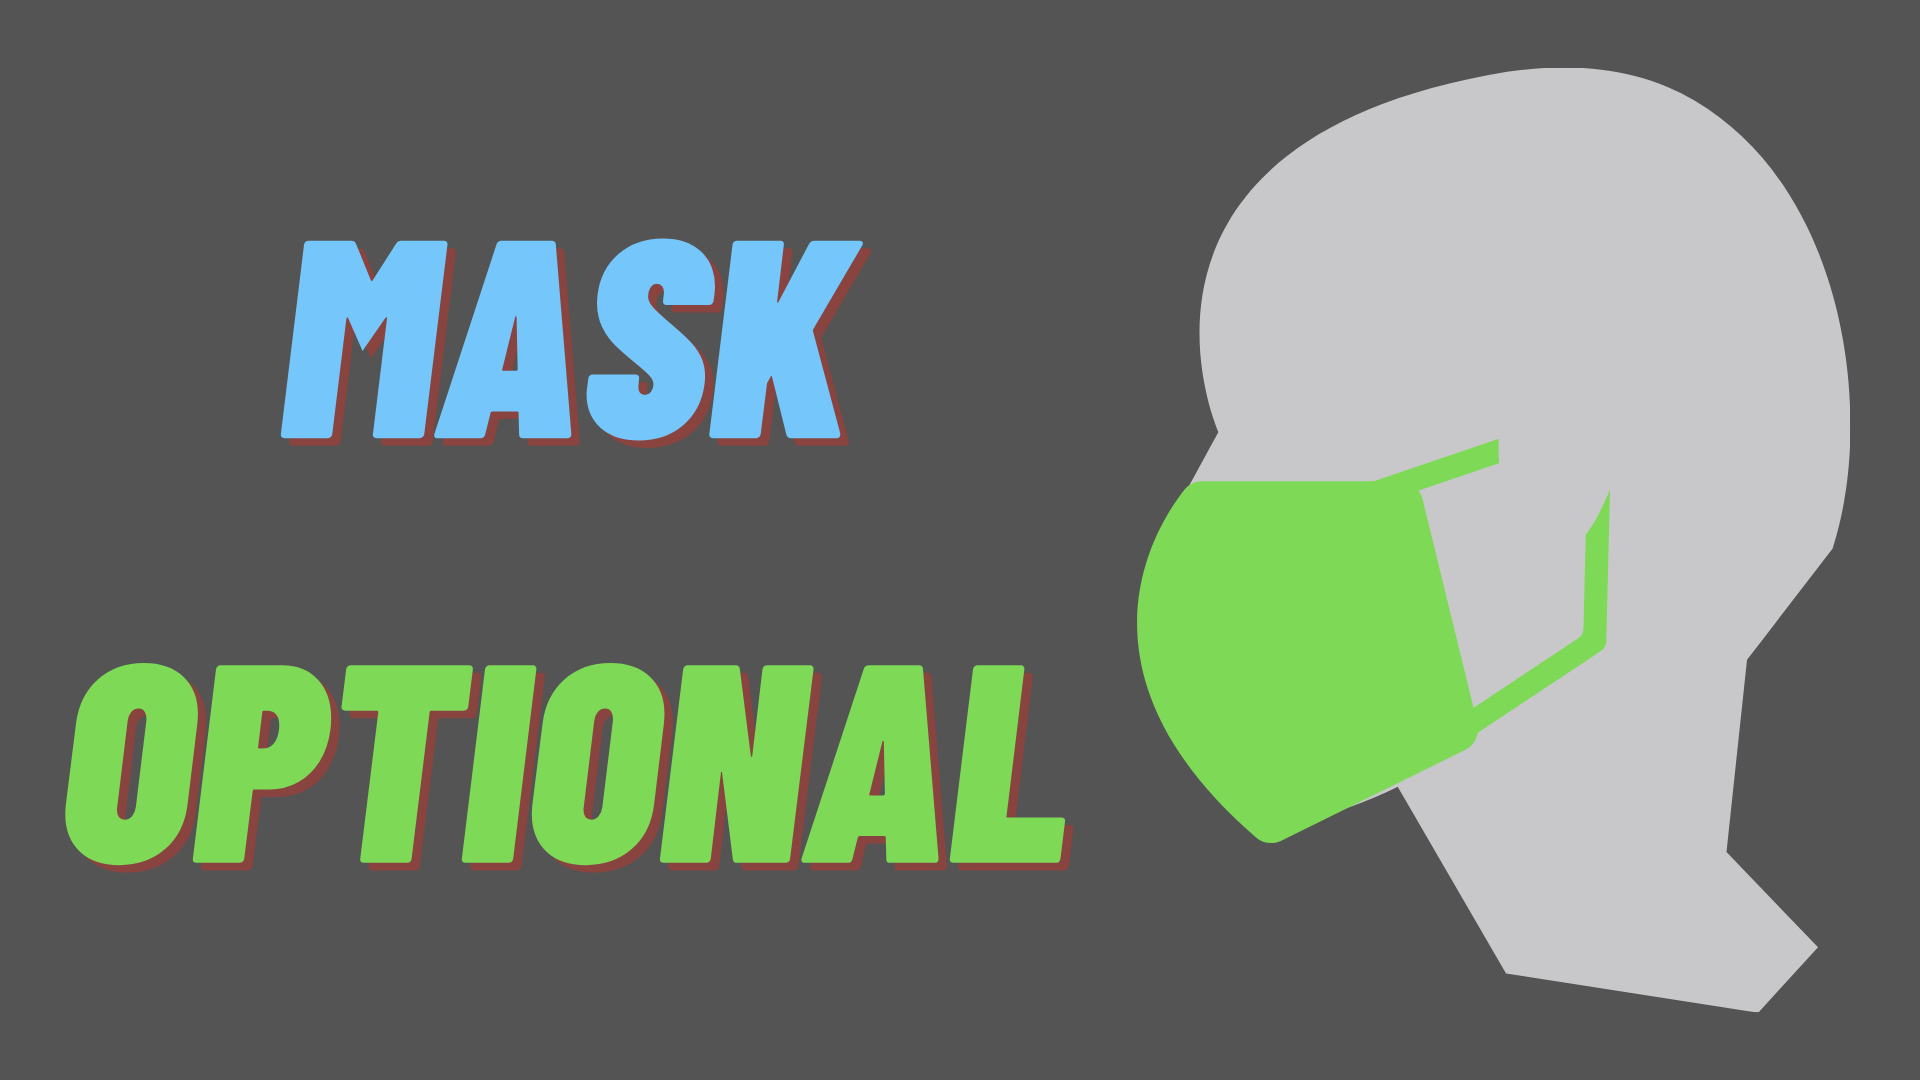 MASK OPTIONAL image